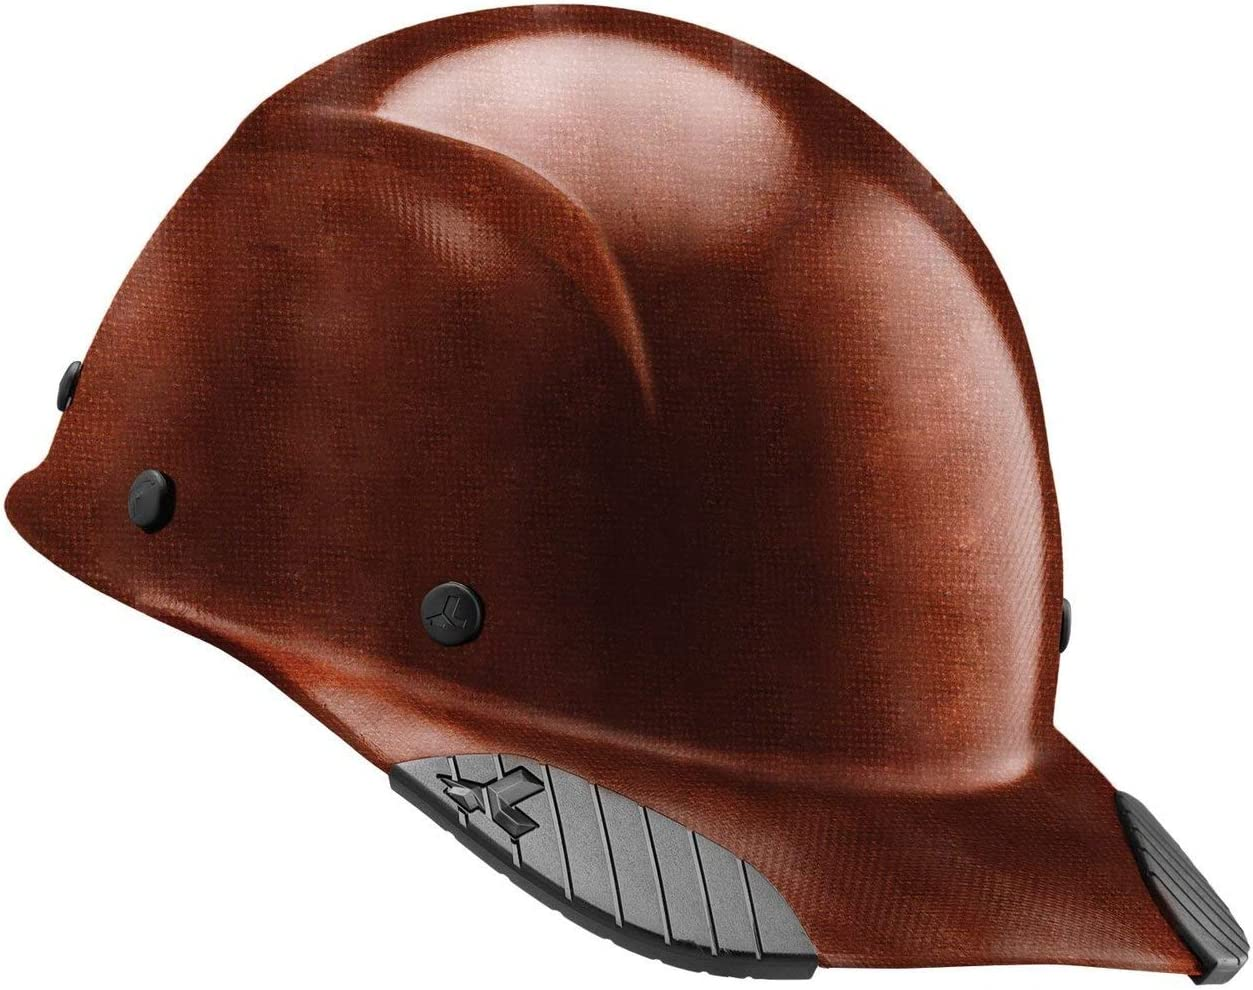 Lift Safety DAX CAP Natural Cap 5 ☆ popular Style Susp Over item handling Hat Point 6 with Hard